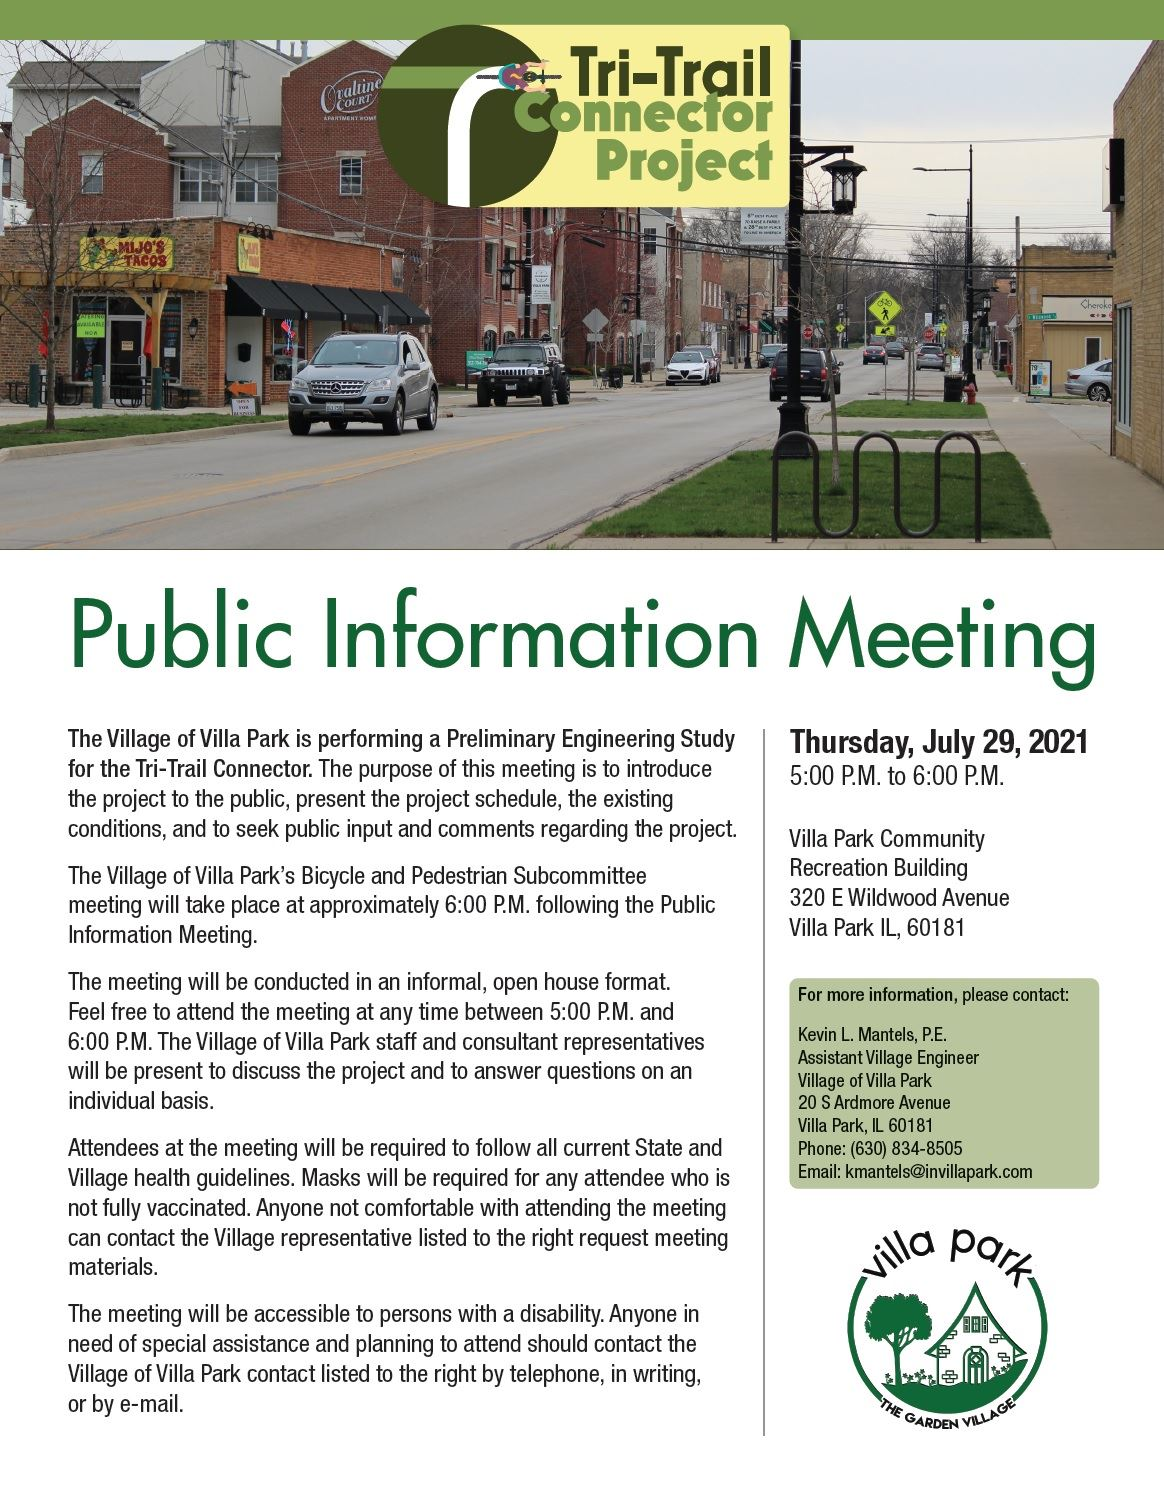 Tri-Trail Connector Project Public Information Meeting Flyer Opens in new window